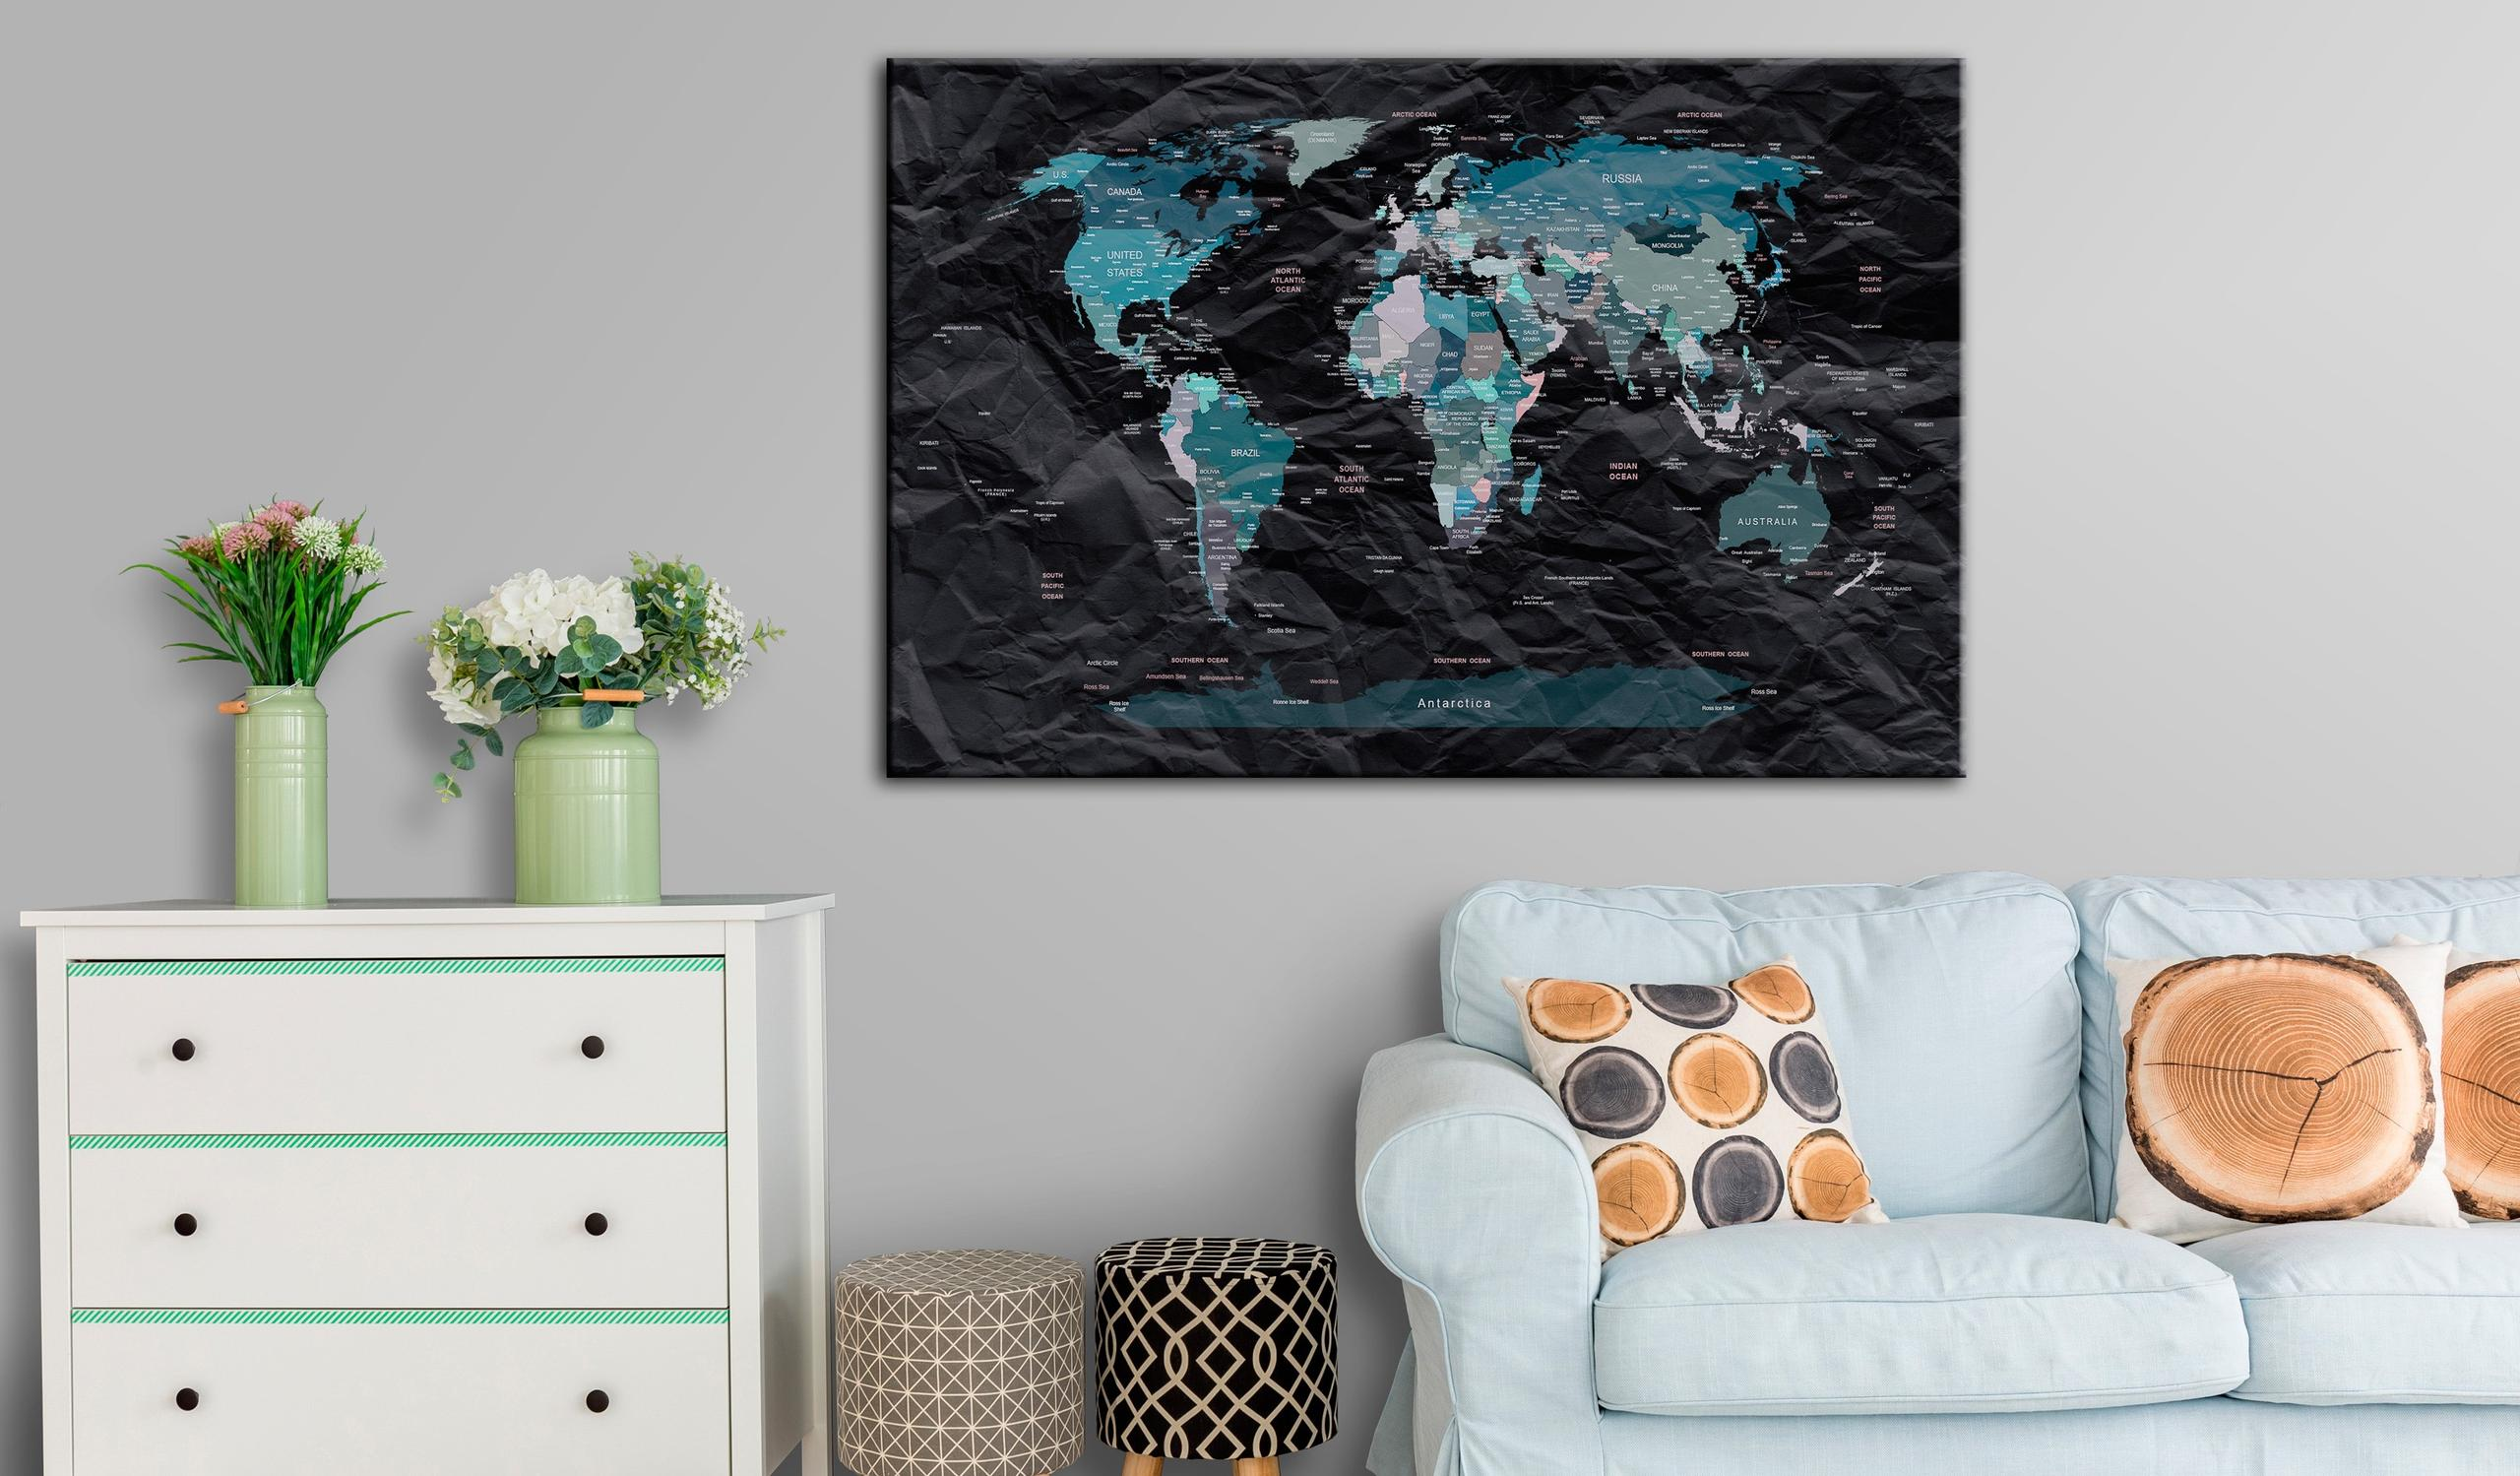 Quadro Di Sughero - Black Ocean [Cork Map] 90x60cm Erroi